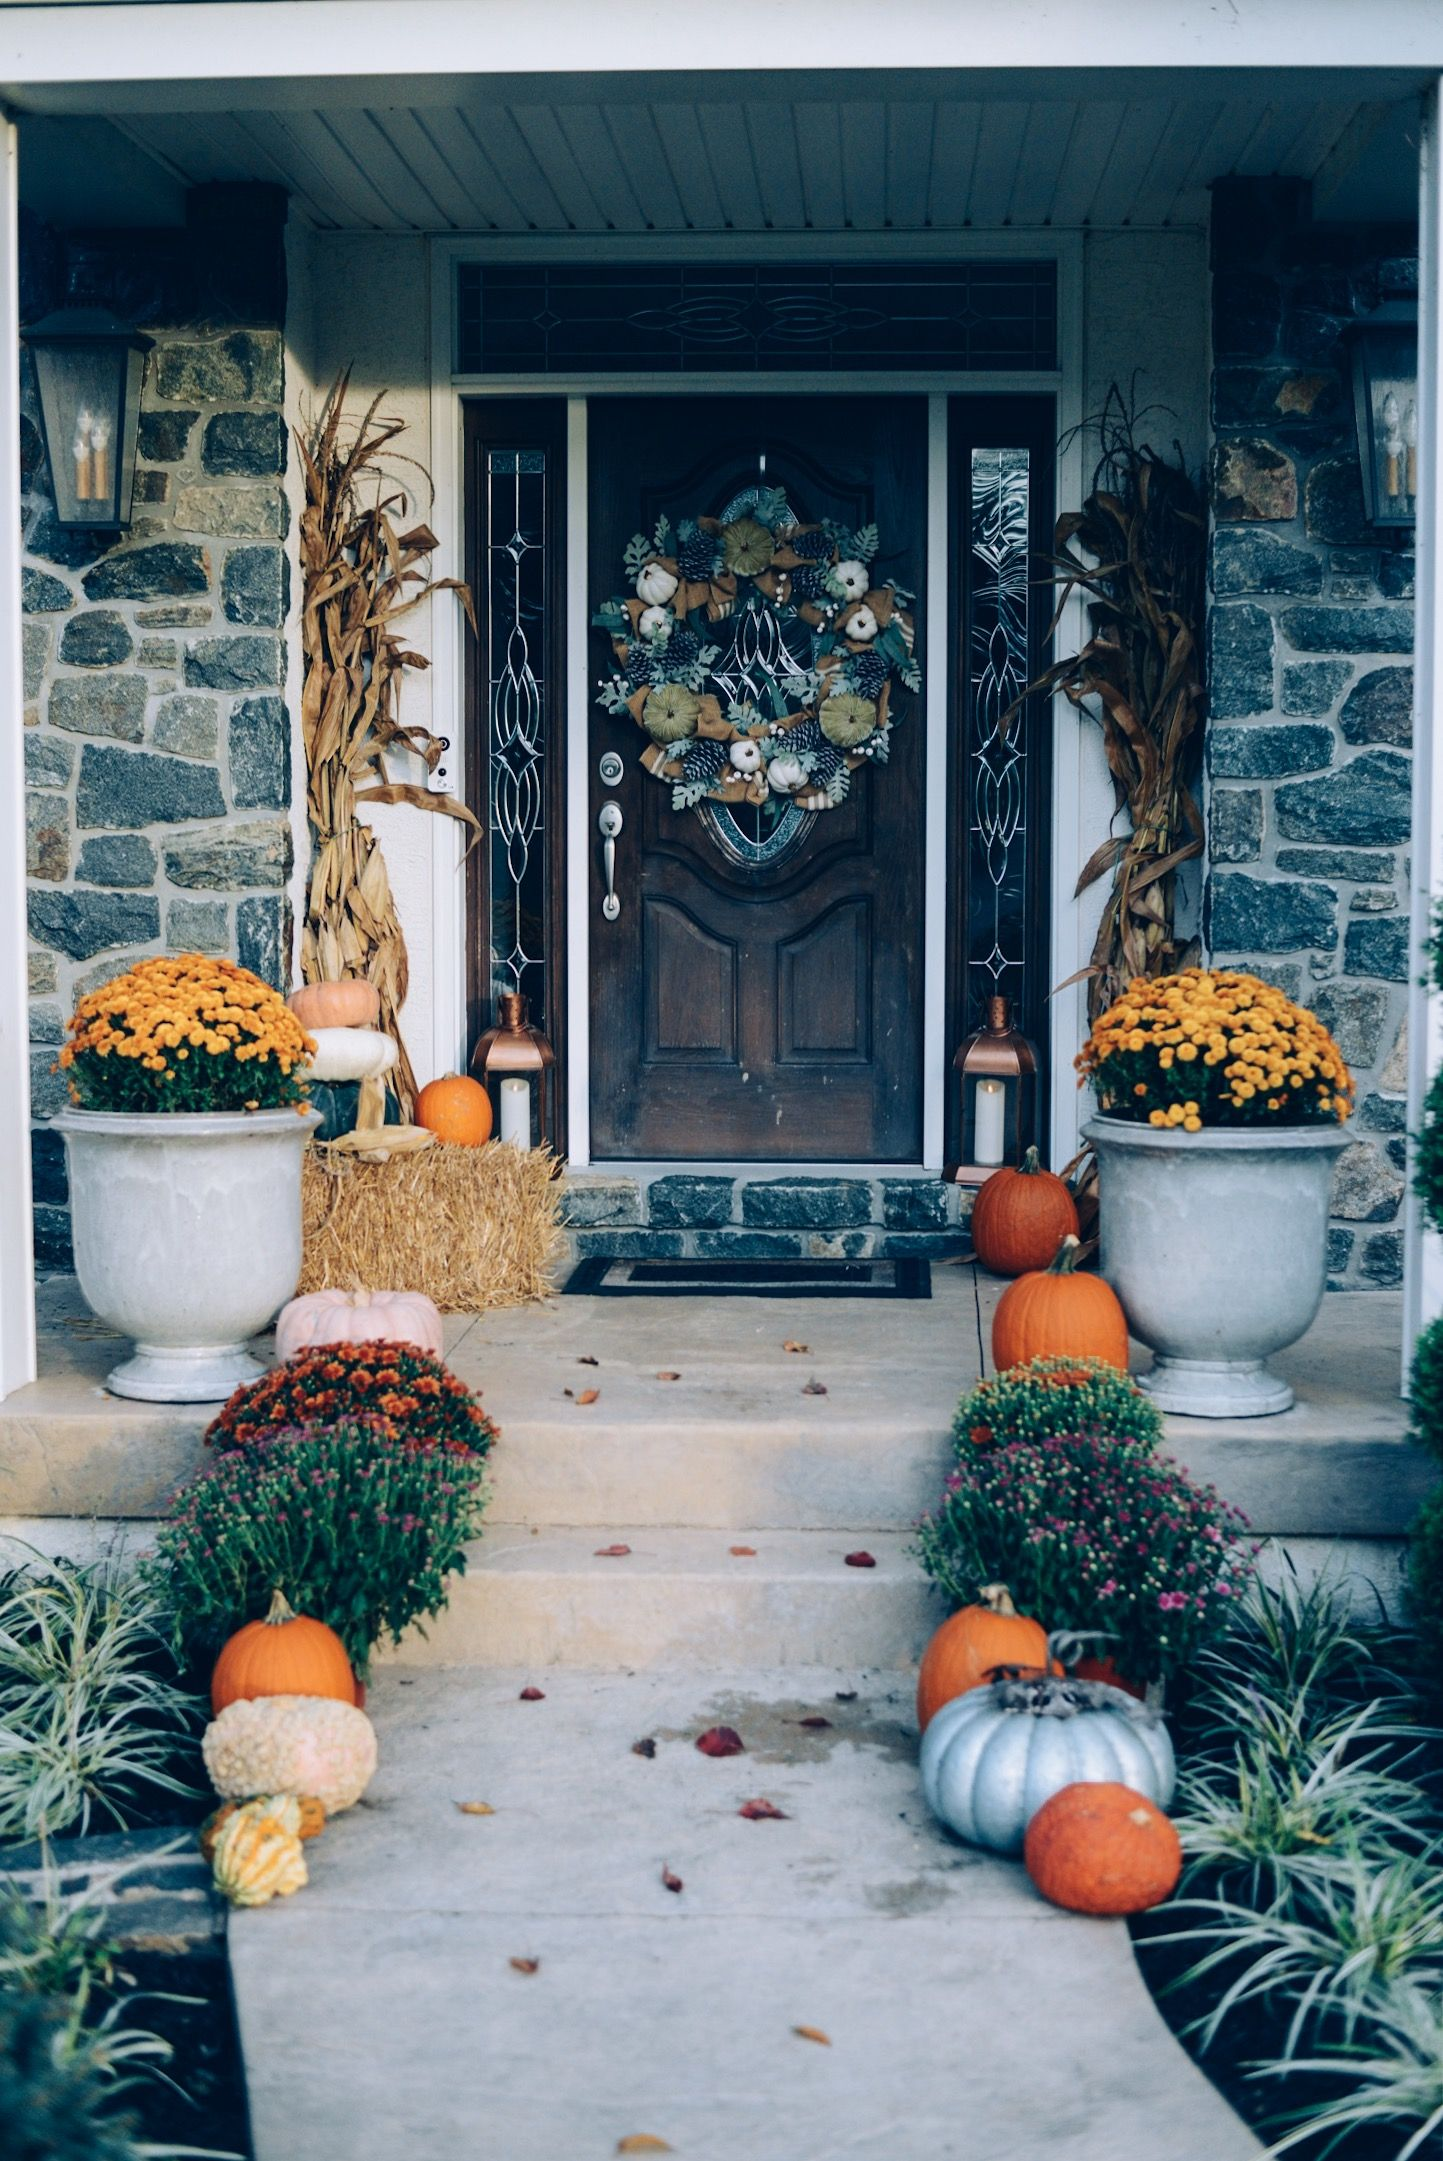 Fall Front Porch Decorating Ideas Instinctively En Vogue Fall Front Porch Decor Porch Decorating Front Porch Decorating